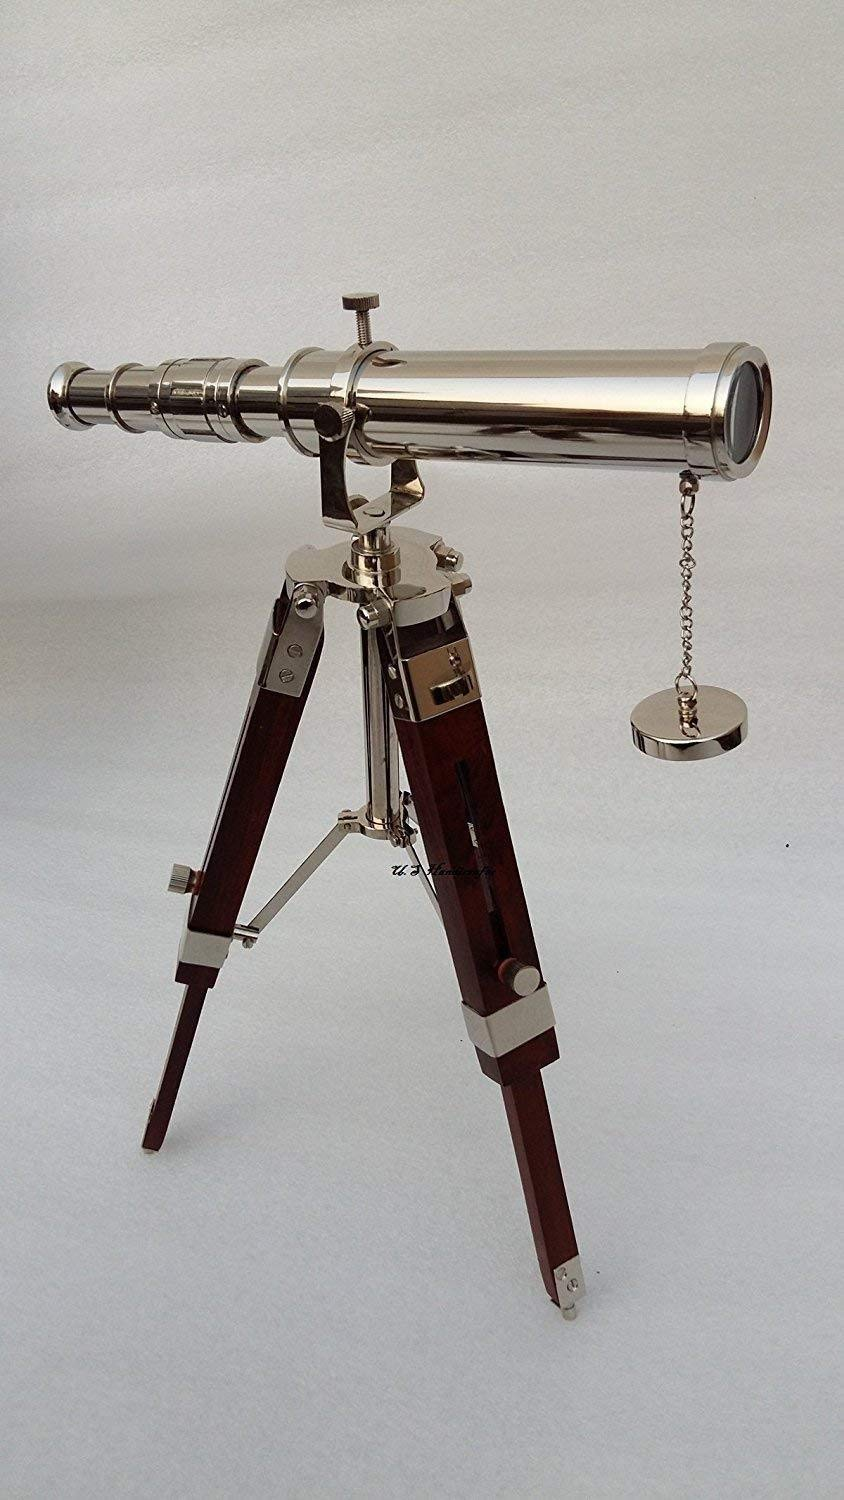 Arsh Nautical Collectible Handmade Brass Marine Telescope with Wooden Tripod Stand A